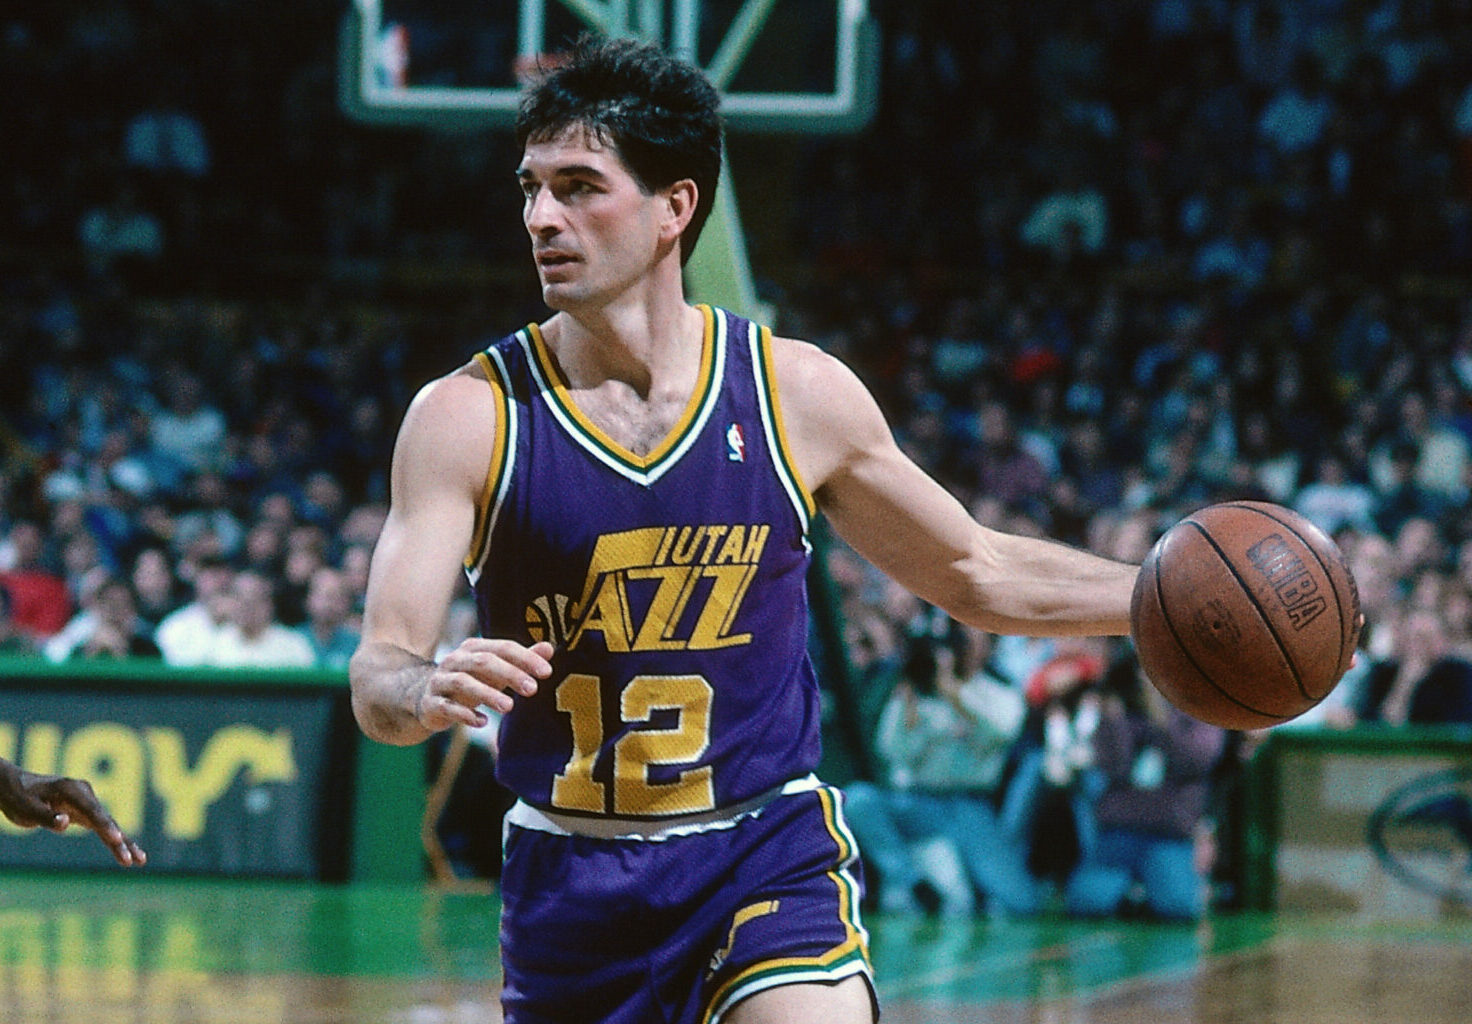 Legends profile: John Stockton